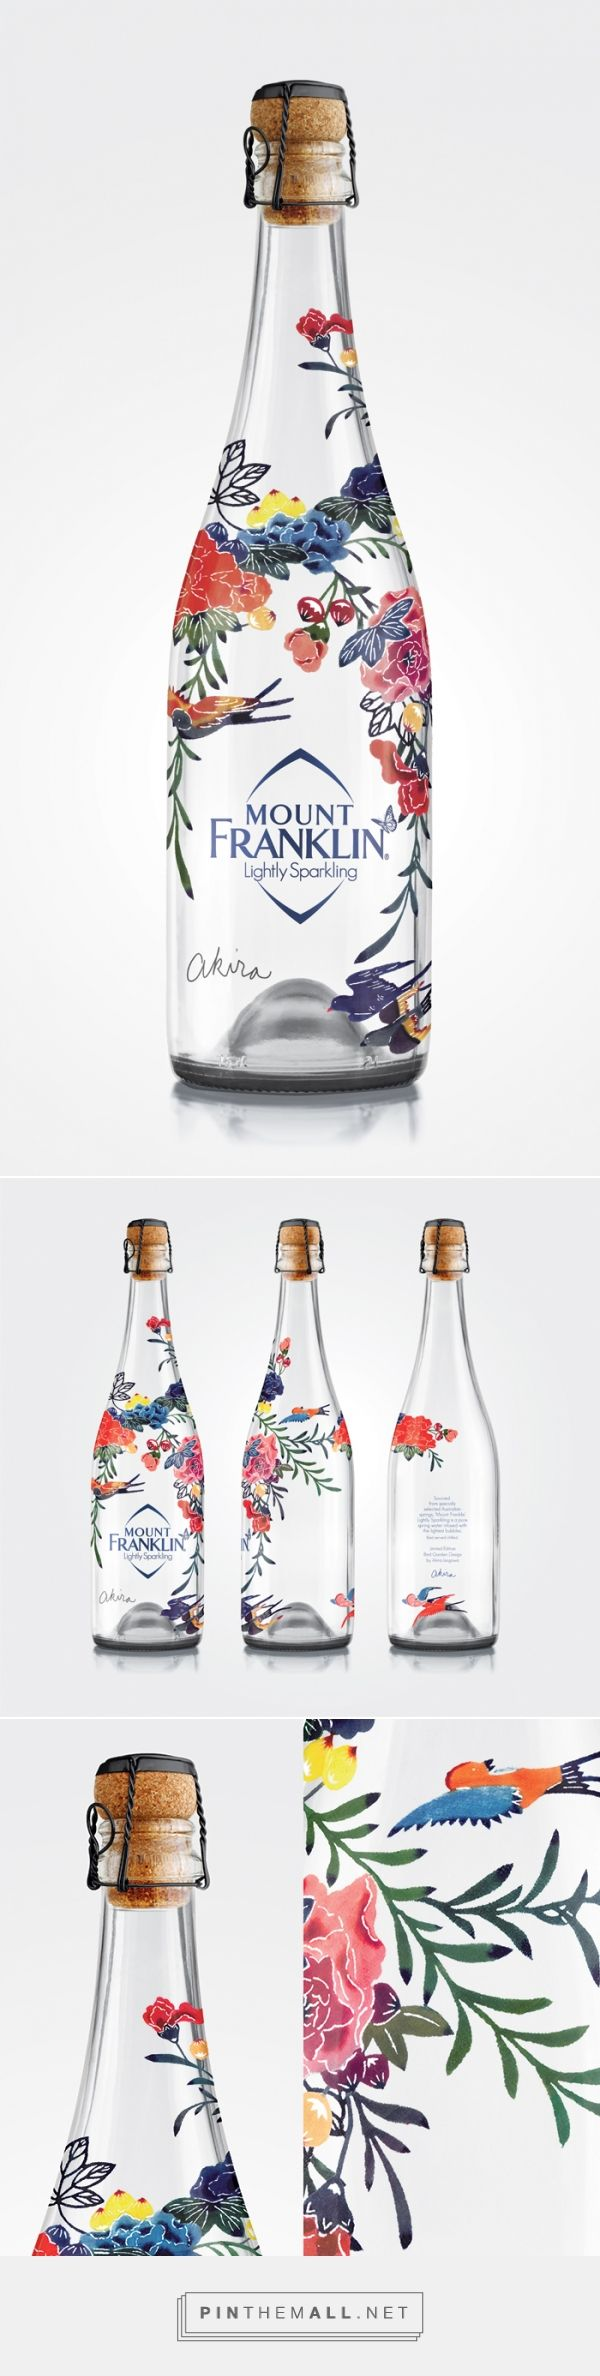 MOUNT FRANKLIN AKIRA | A limited edition Bird Garden Design by Akira Isogawa. Taking Mount Franklin's premium positioning to new heights through a limited edition champagne water bottle. | Creative Platform